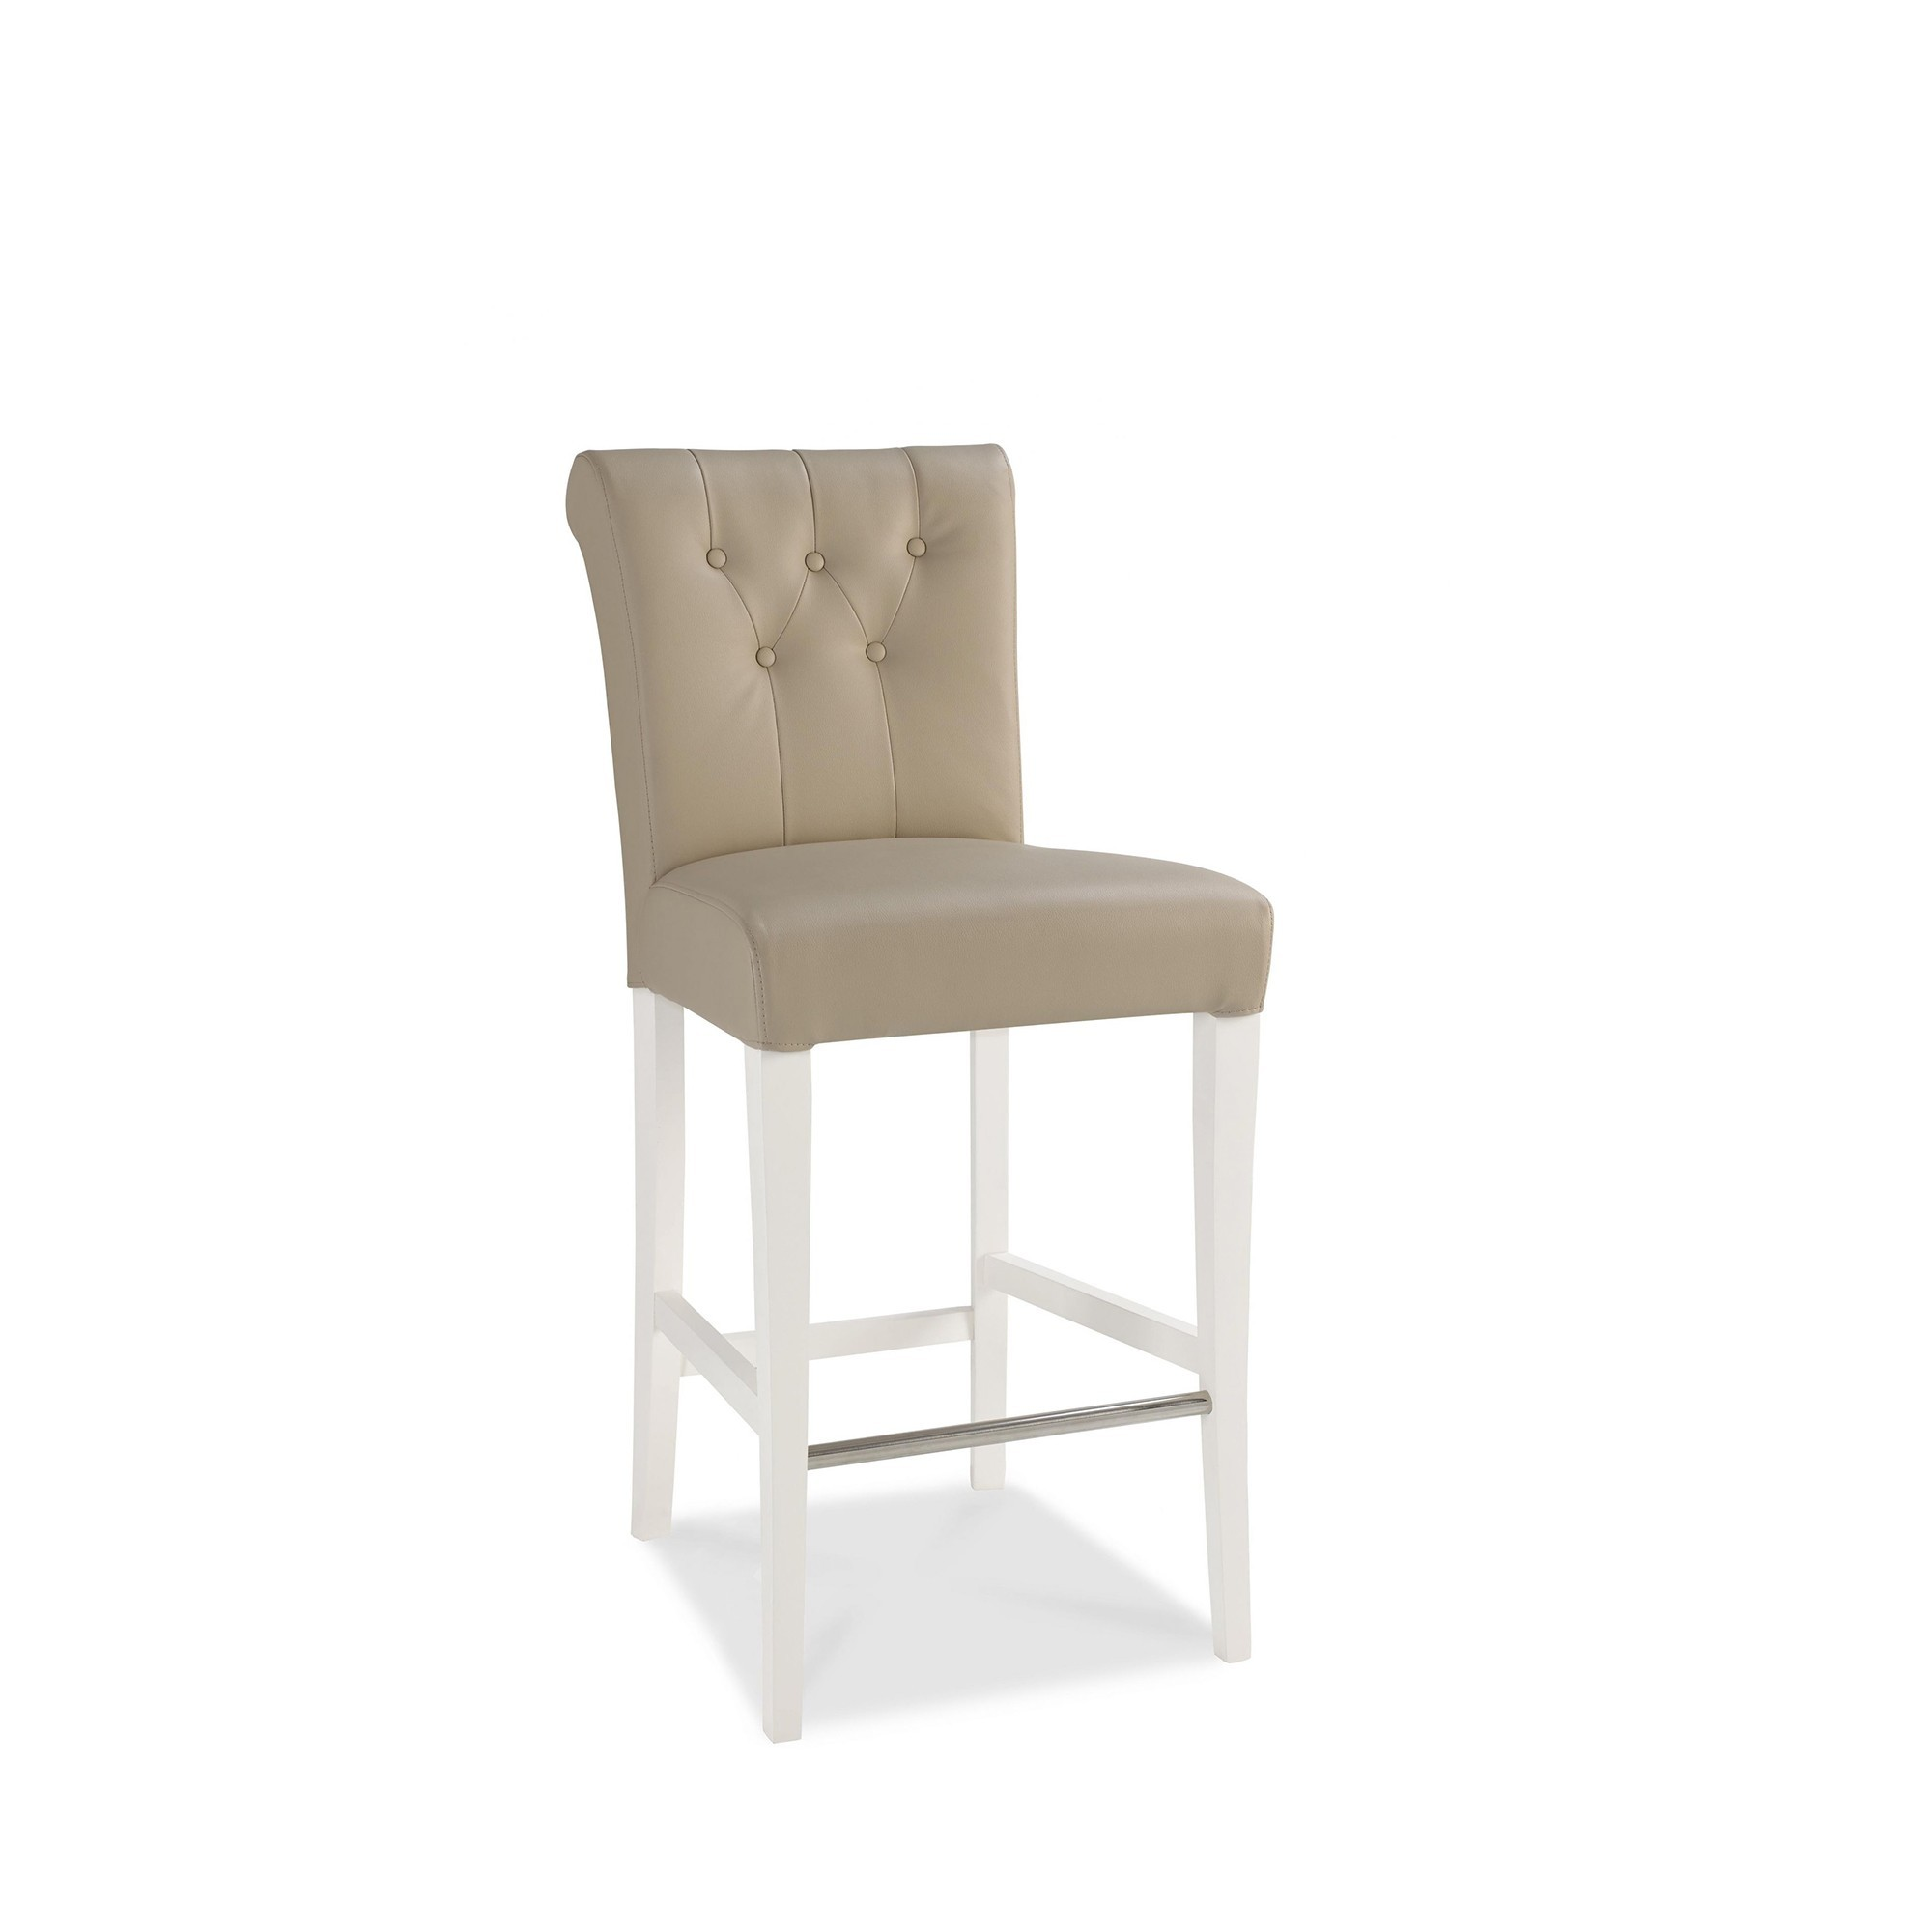 Upholstered Bar Chairs Cookes Collection Camden Two Tone Leather Upholstered Bar Stool